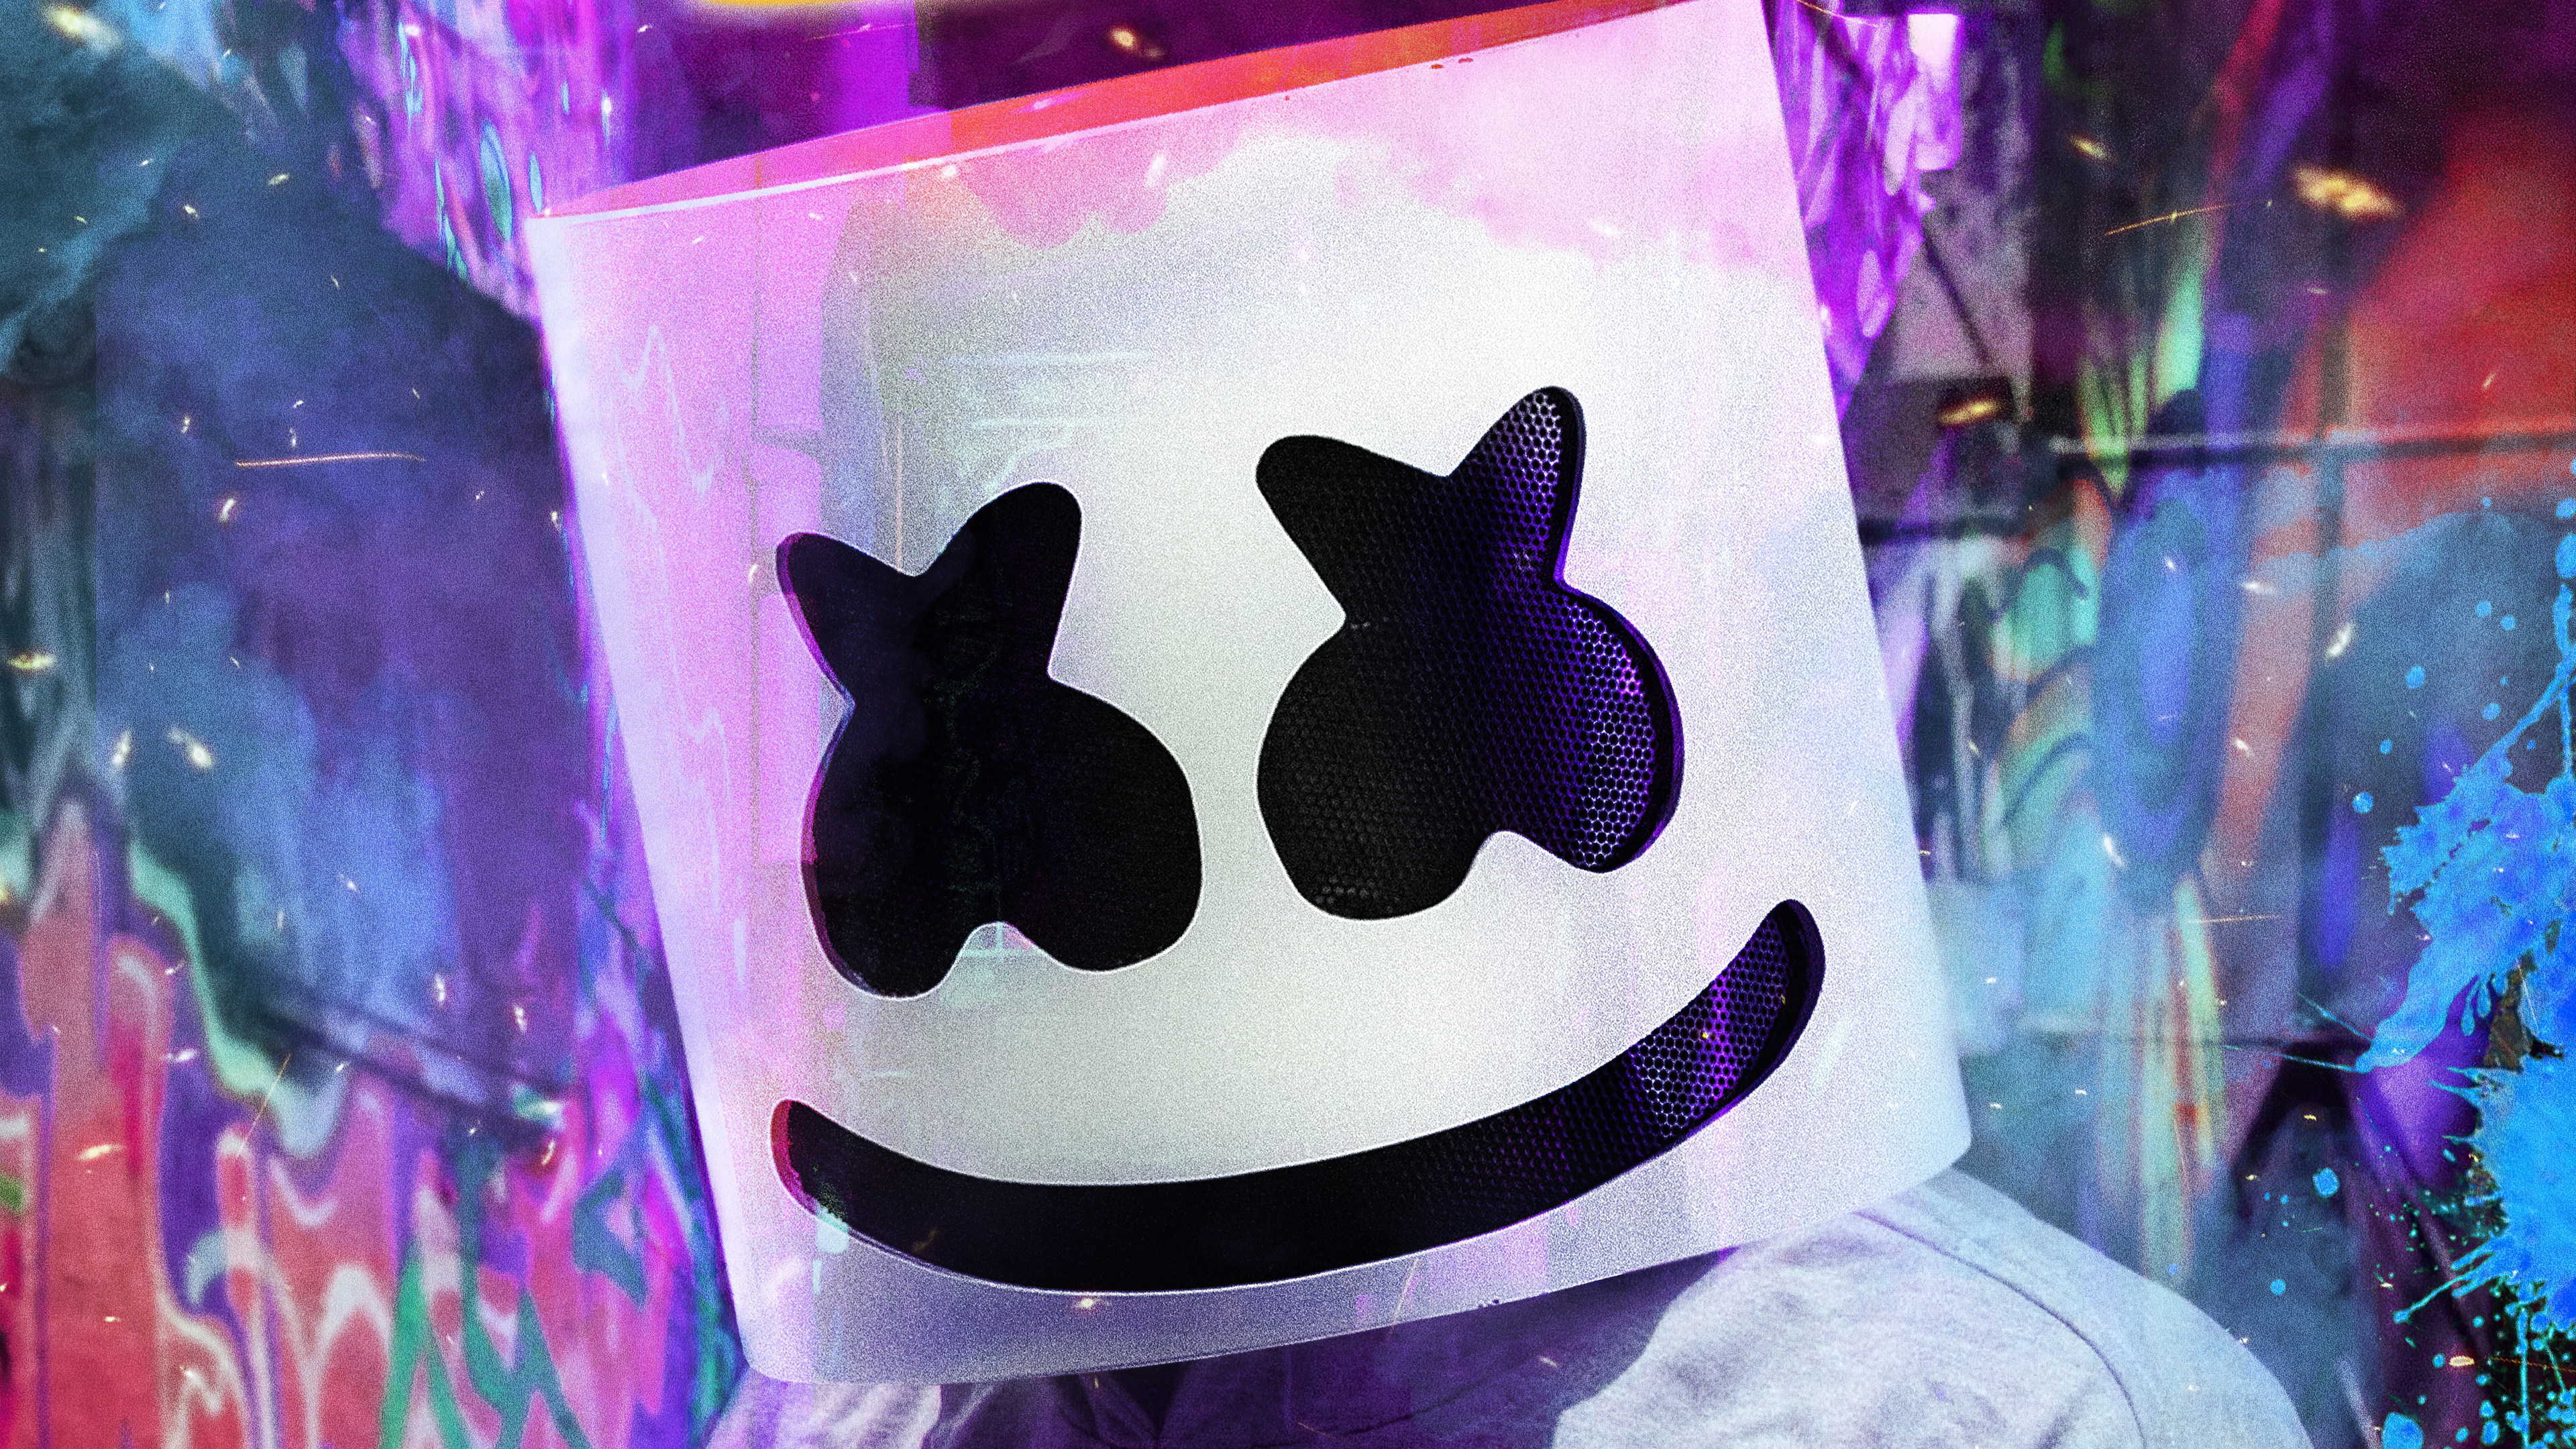 marshmello 2020 mask 4k 1608984468 - Marshmello 2020 Mask 4k - Marshmello 2020 Mask 4k wallpapers